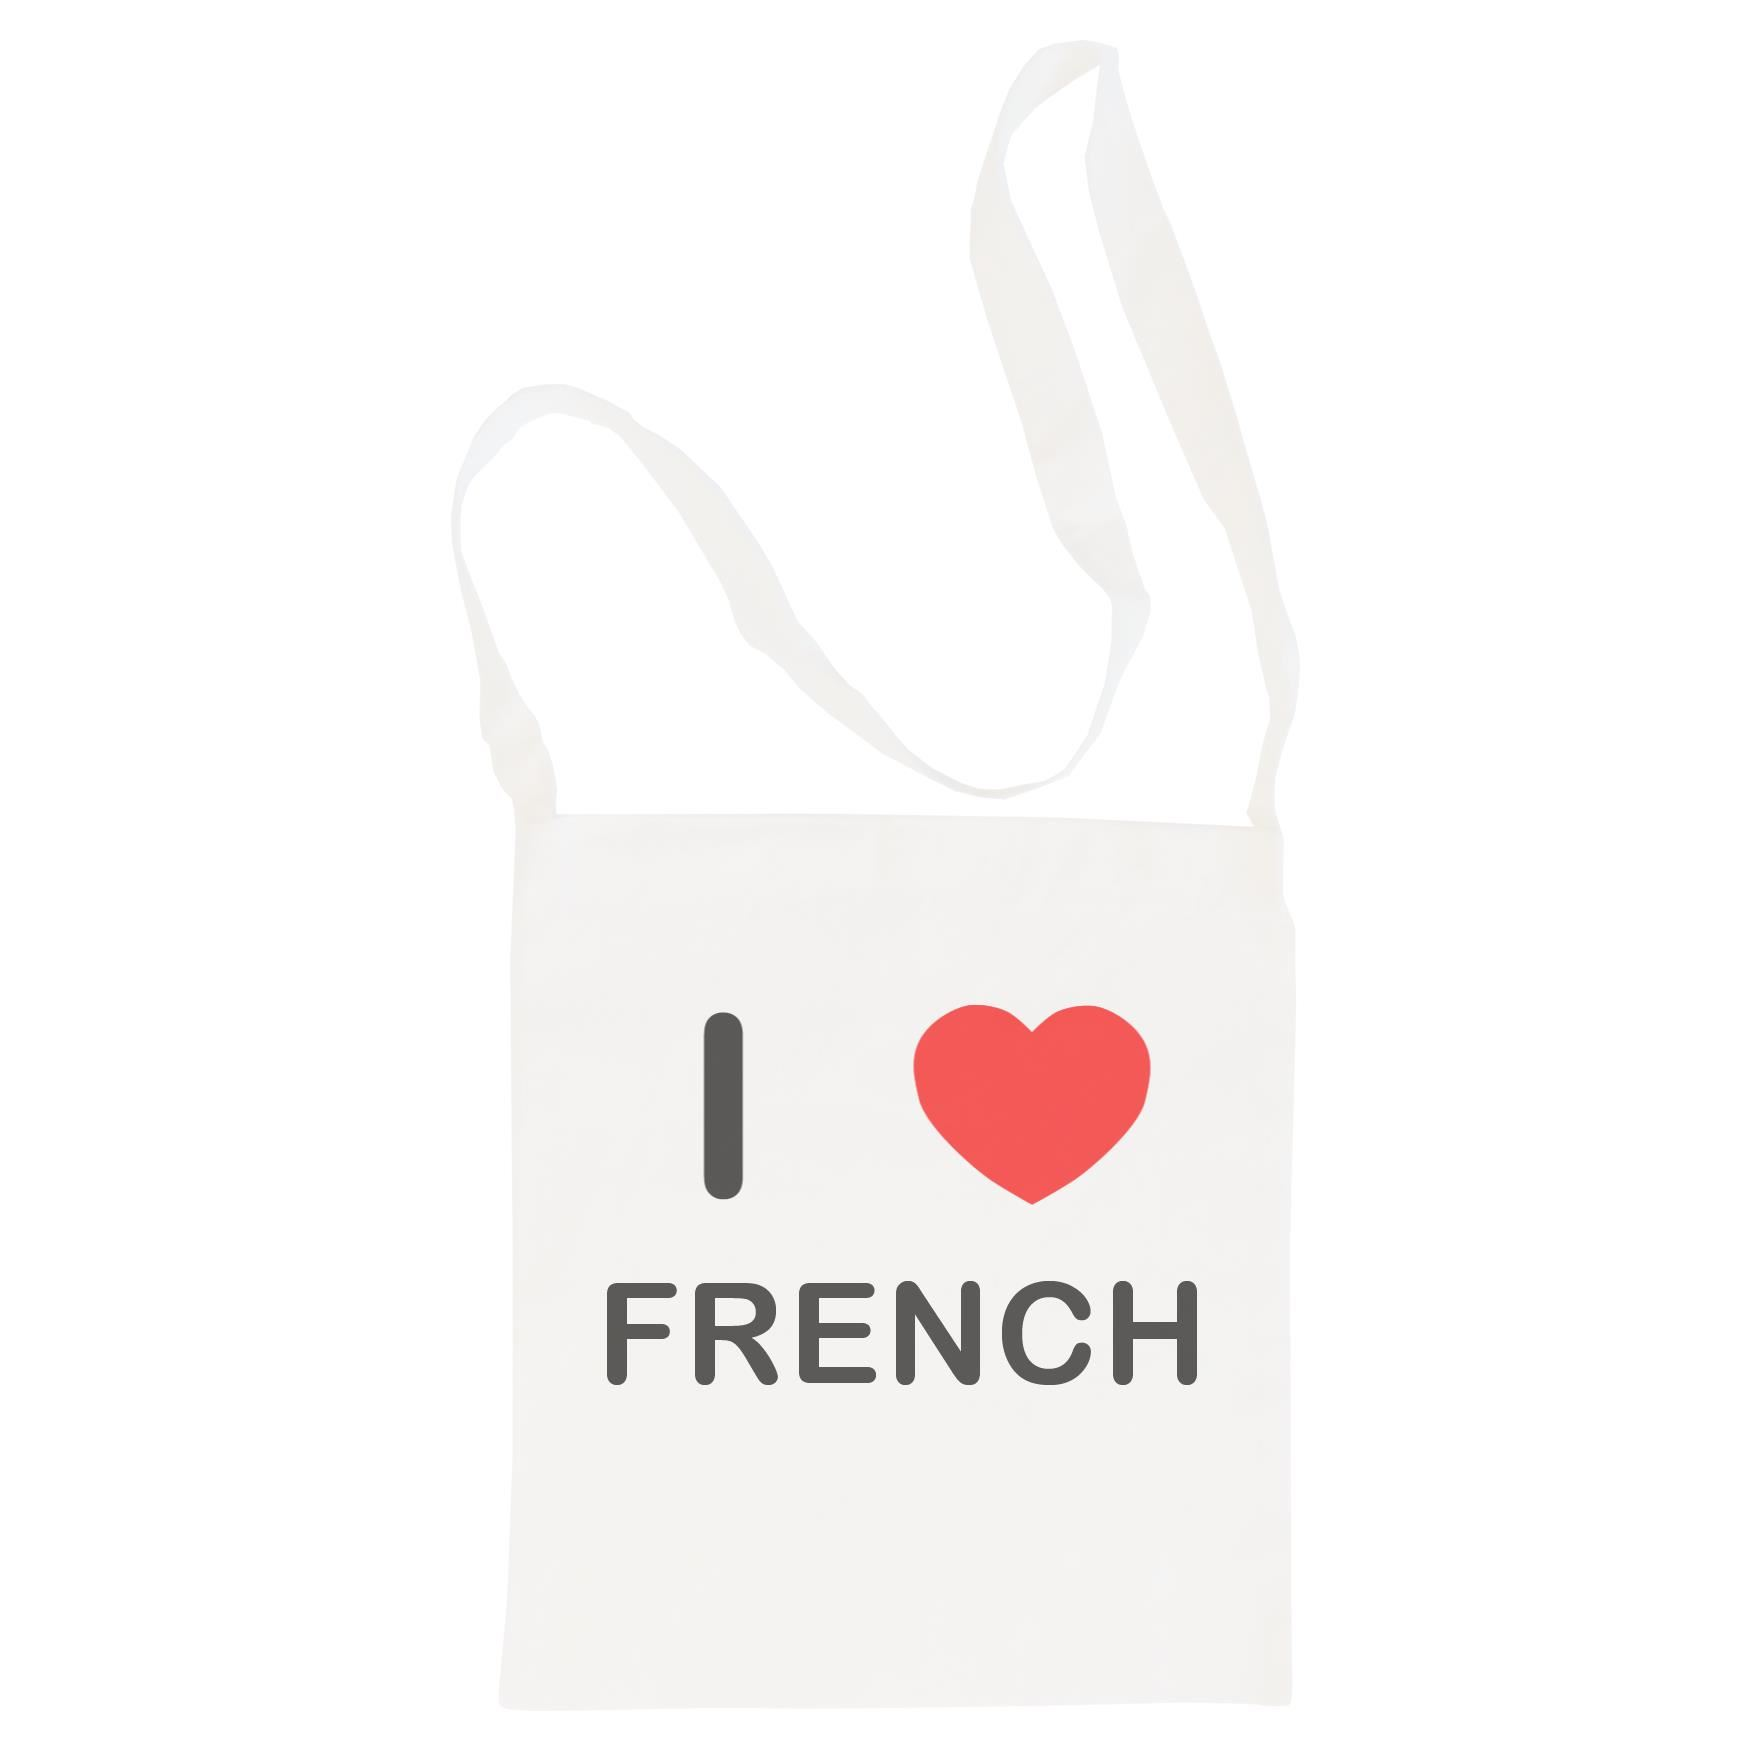 I Love French - Cotton Bag | Size choice Tote, Shopper or Sling